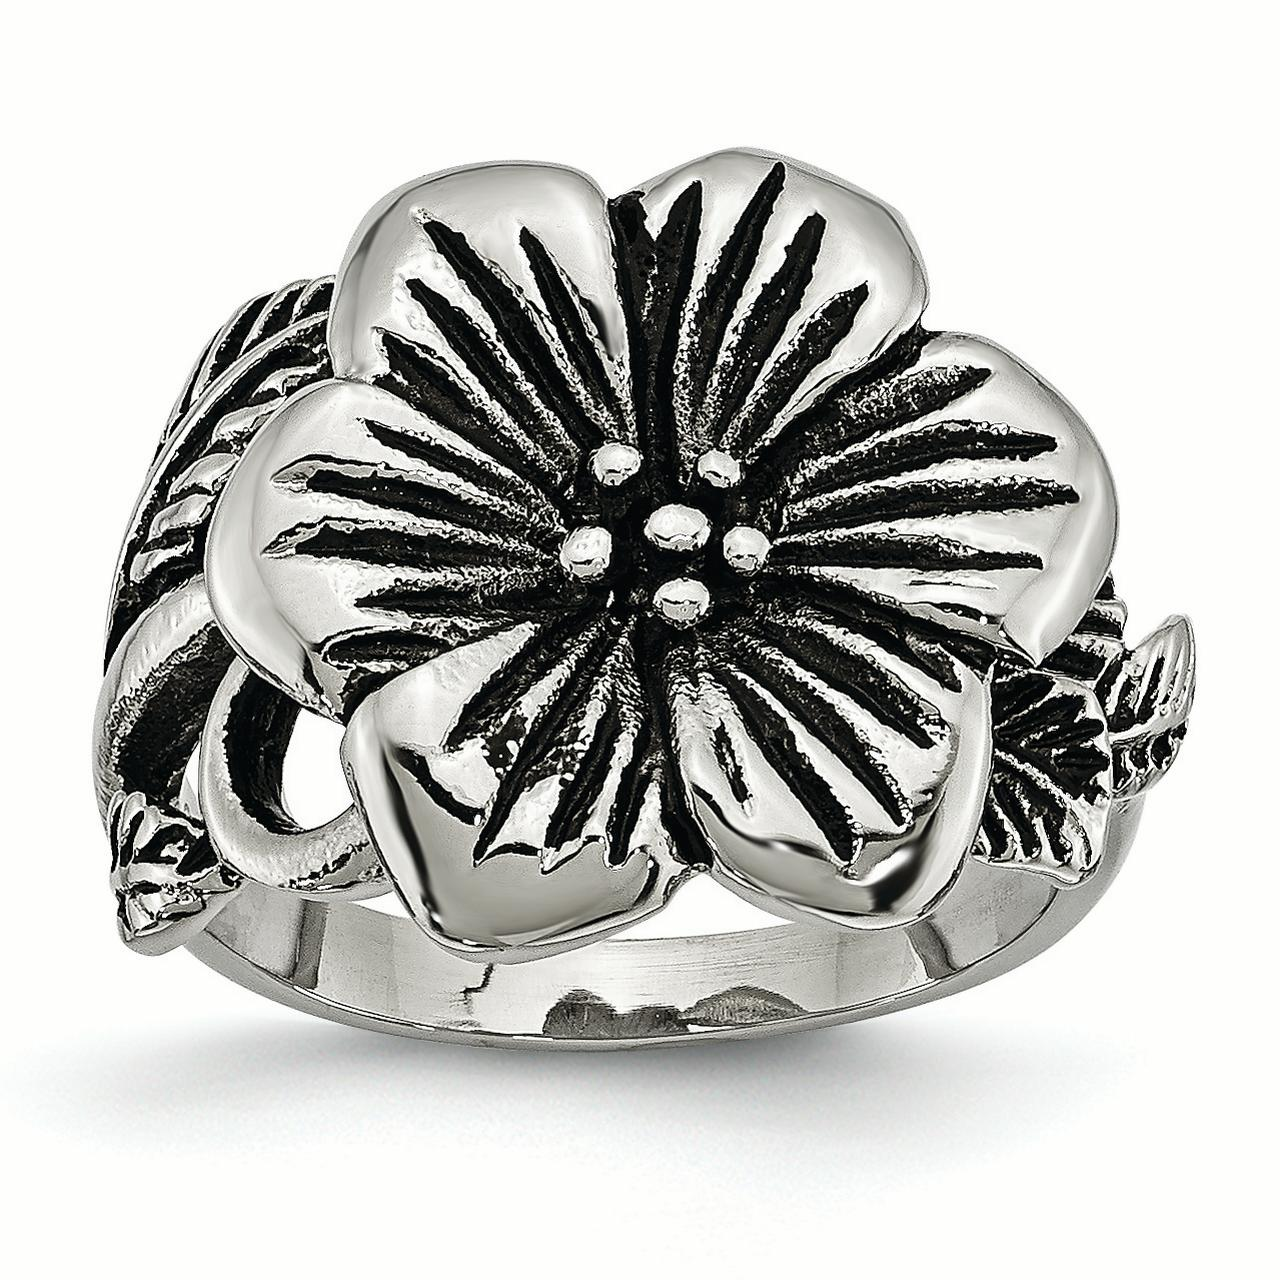 Stainless Steel Antique Finish Flower Band Ring Size 6.00 Flowers/leaf Fashion Jewelry Gifts For Women For Her - image 6 de 6